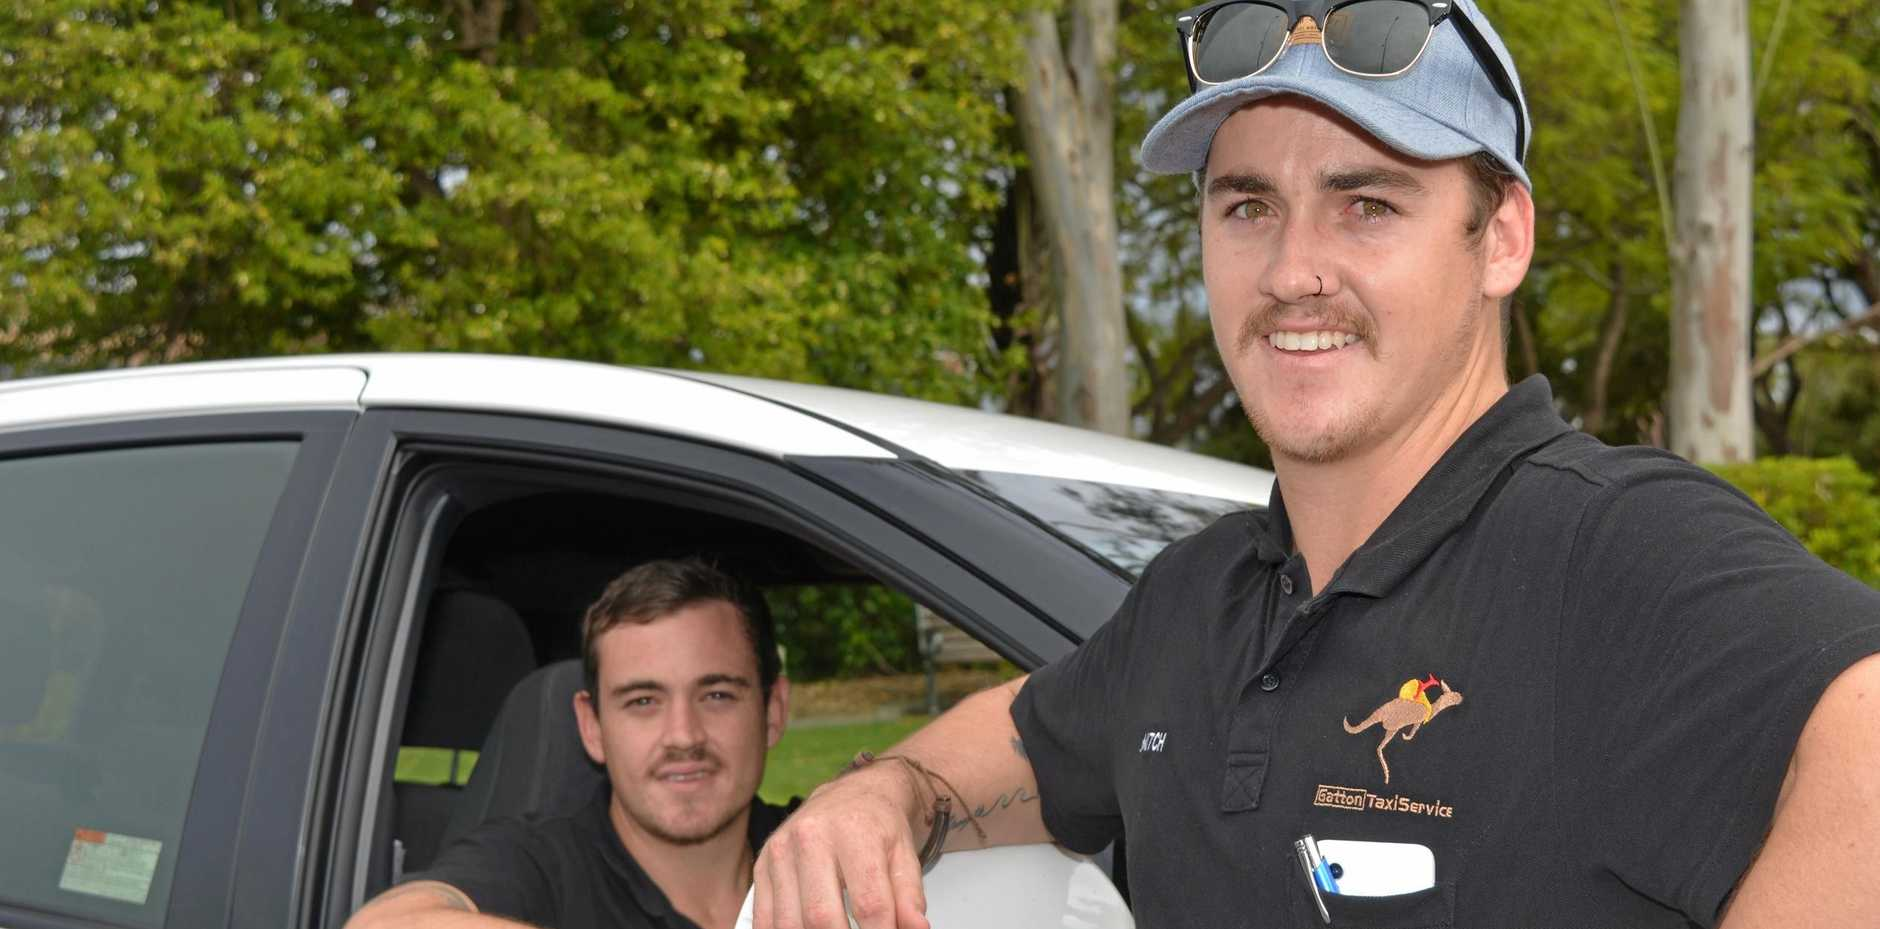 ROAD TO CHANGE: Gatton Taxi Service owners Thomas and Mitch Small are eager to drive change in the community.